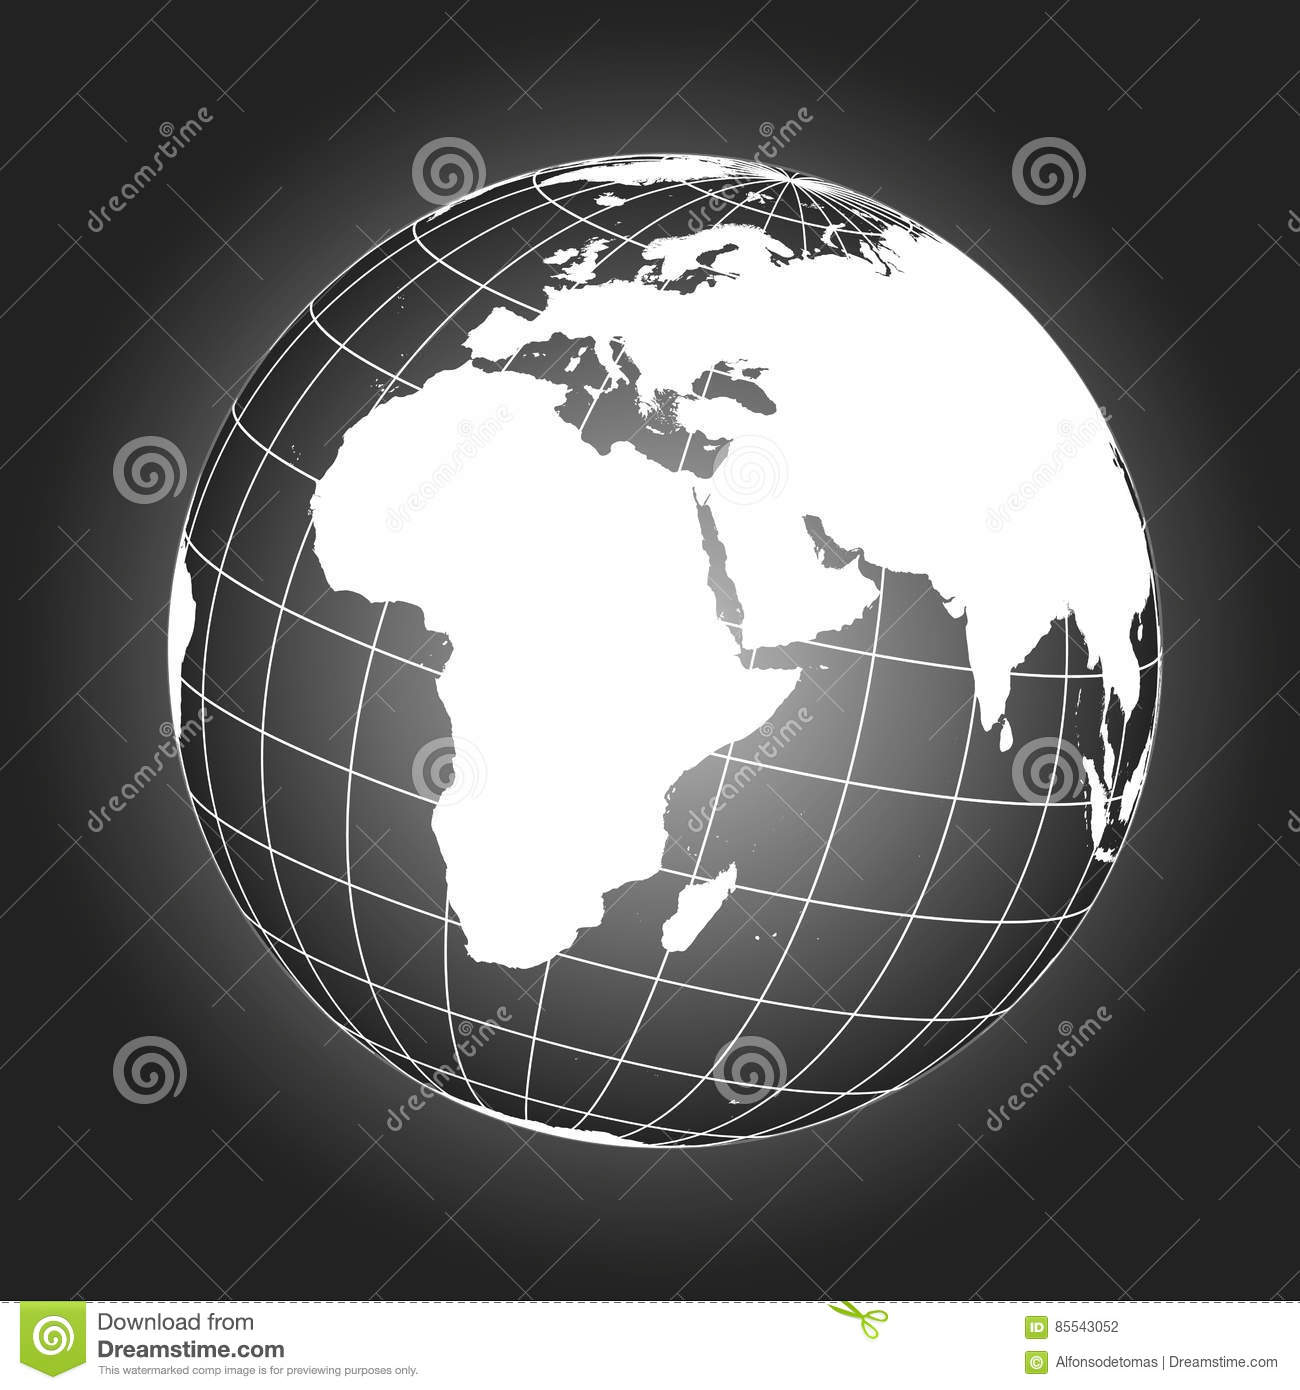 Europe and africa map in black and white stock vector illustration download comp gumiabroncs Choice Image